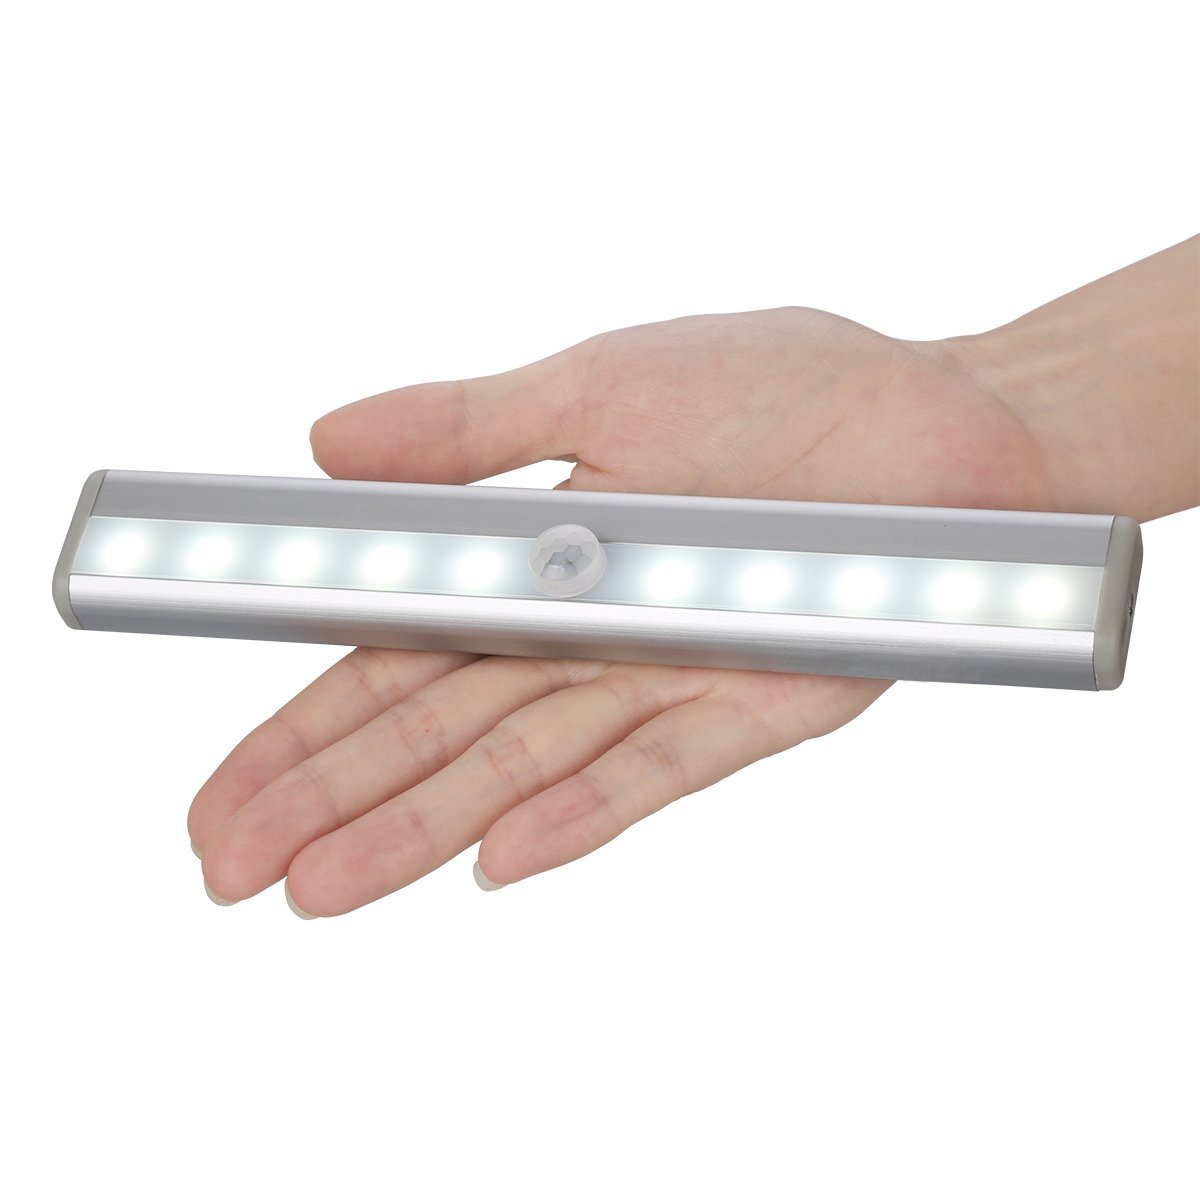 Amazon.com : Wardrobe Sensor Night Lights Stick On Portable 10 Led Wireless  Motion Sensing Closet Cabinet Lamp Display(Battery Operated) : Garden U0026  Outdoor